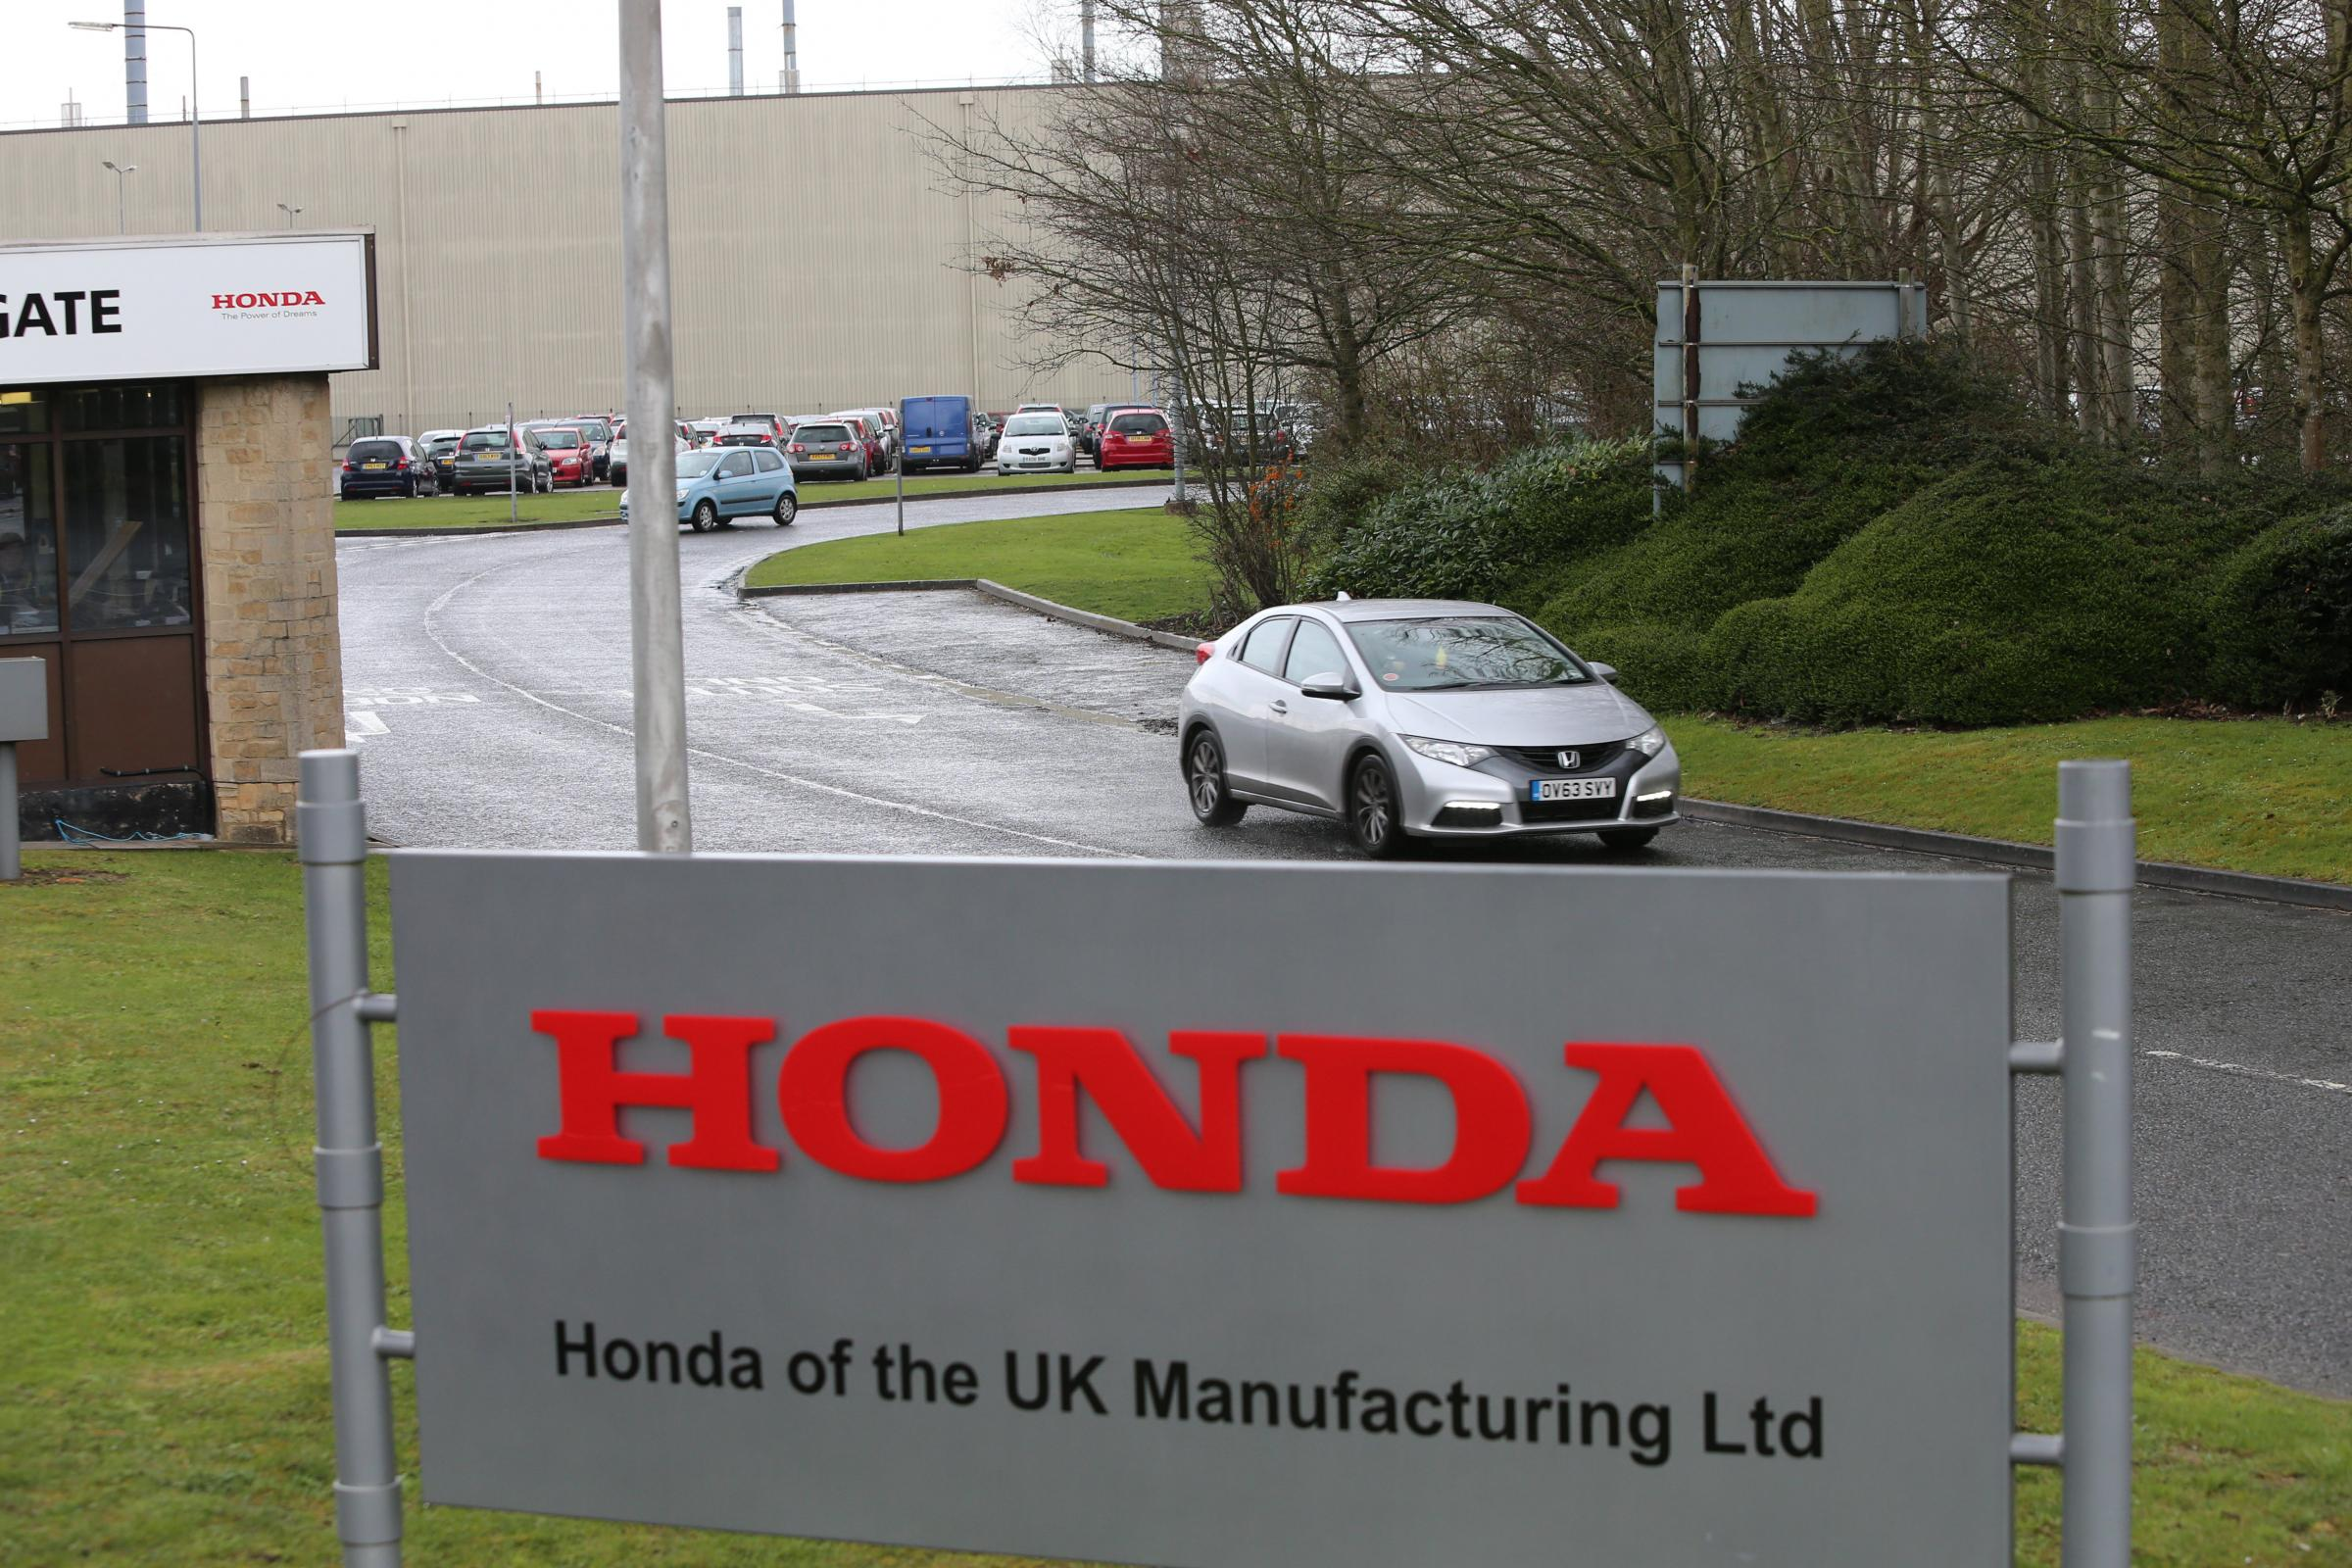 Workers at Honda's Swindon plant will be able to watch England's match tonight Stuart Harrison